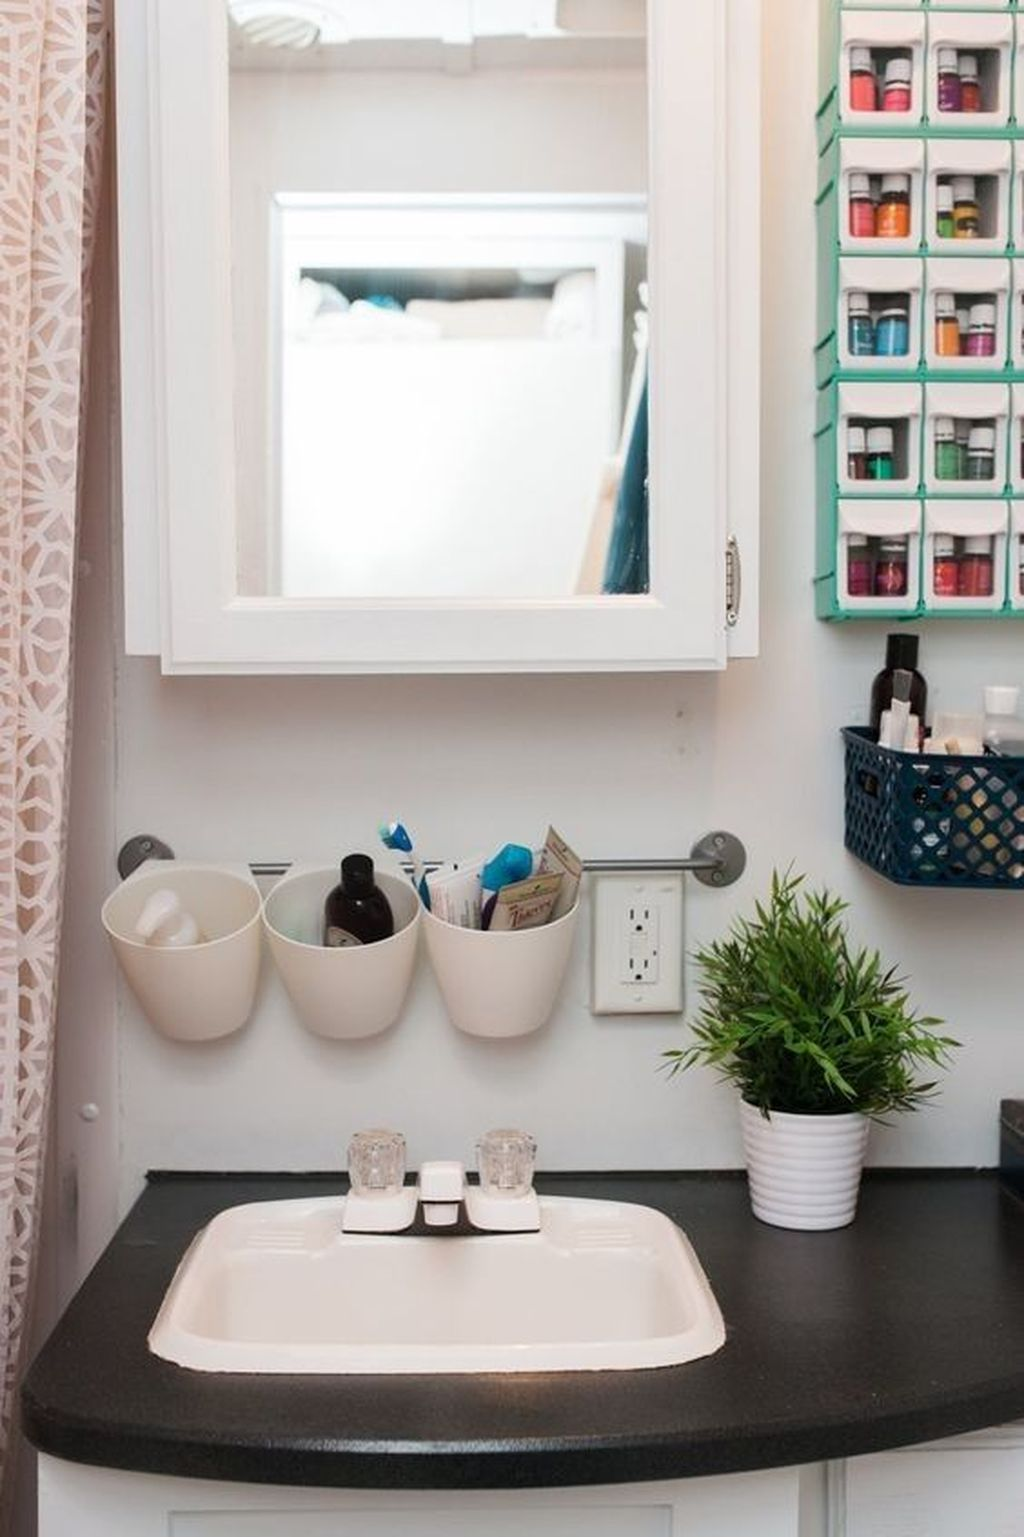 Amazing Bathroom Storage Design Ideas For Small Space 22